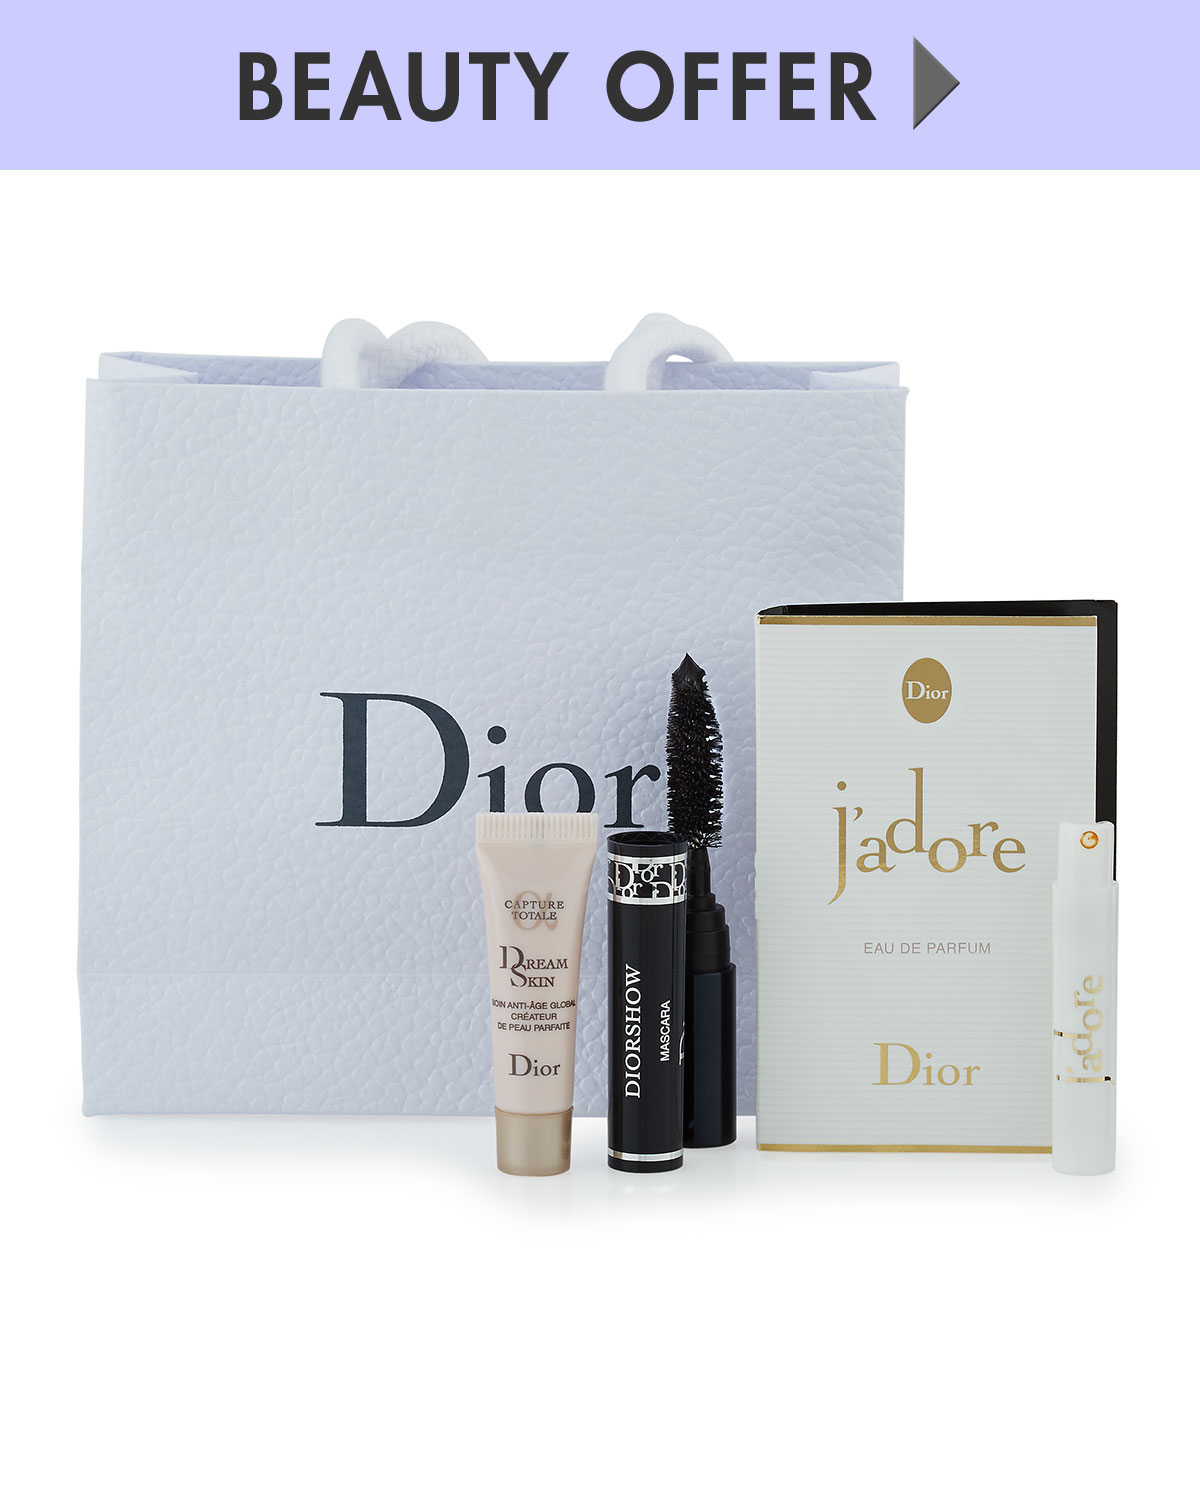 DiorYours with any $200 Dior Beauty purchase—Online only*